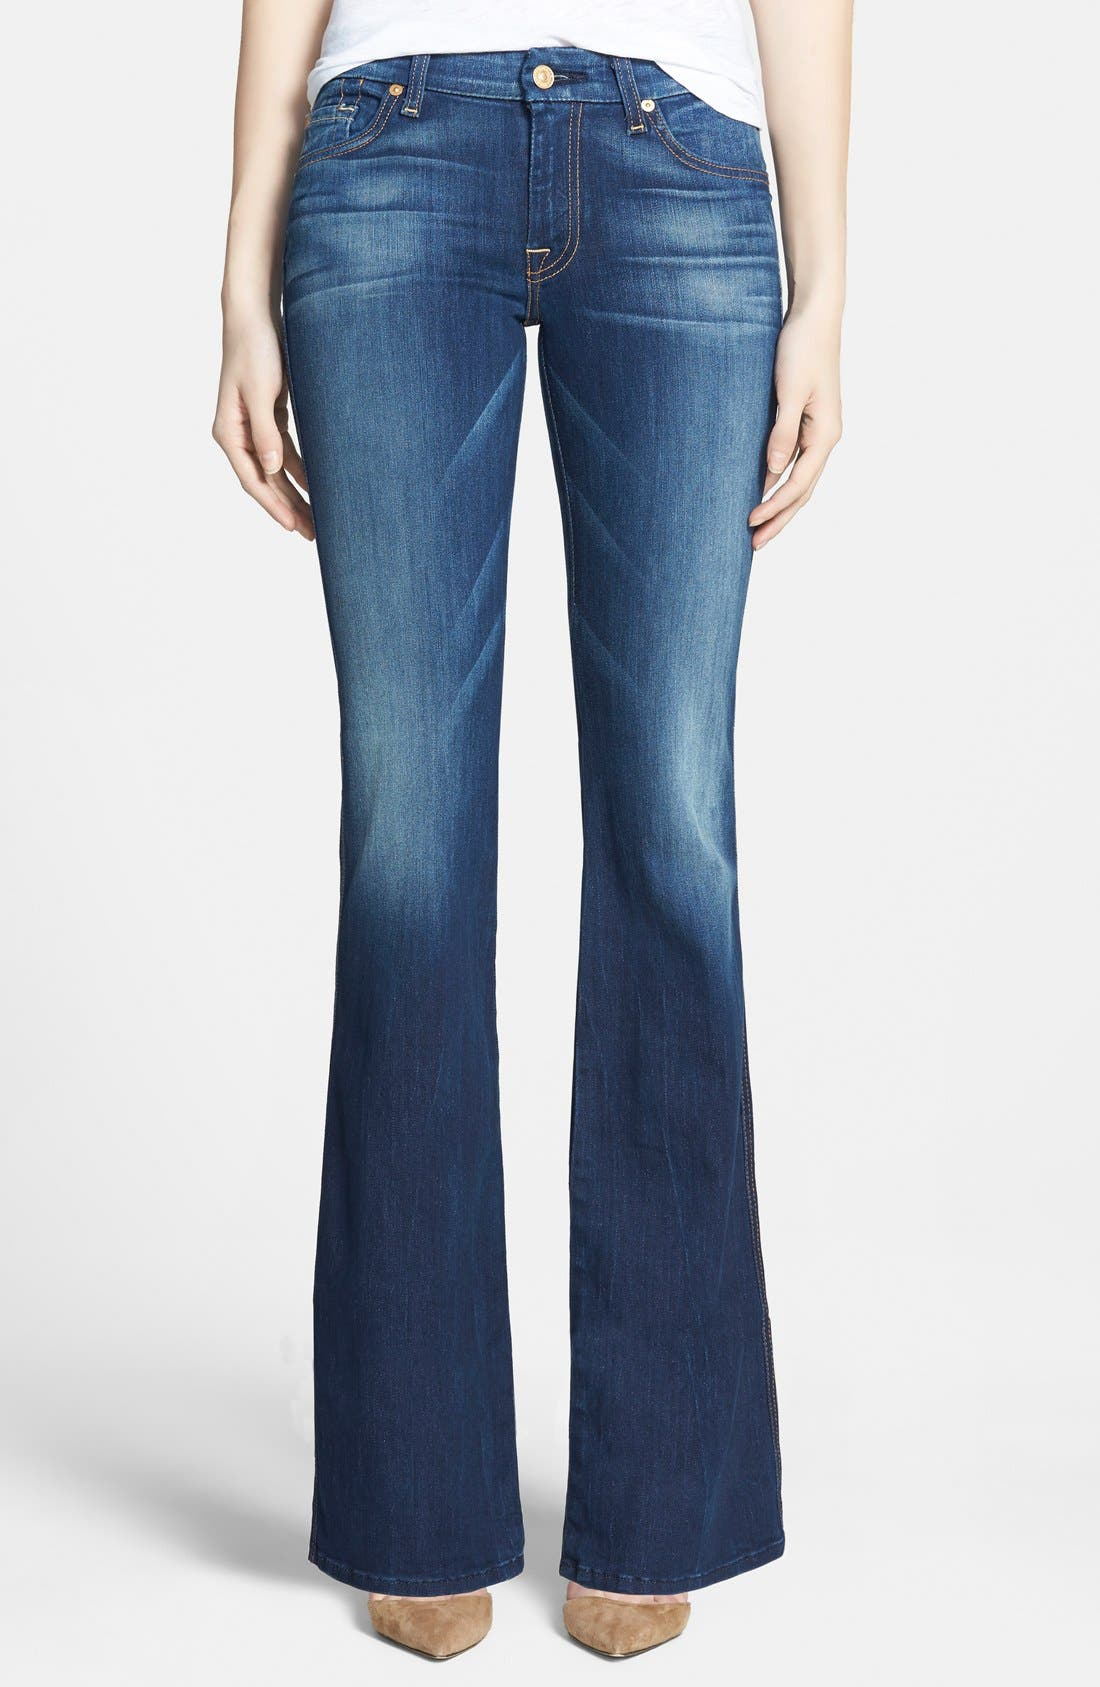 Alternate Image 1 Selected - 7 For All Mankind® 'Lexie' Bootcut Stretch Jeans (Aggressive Siren) (Petite)